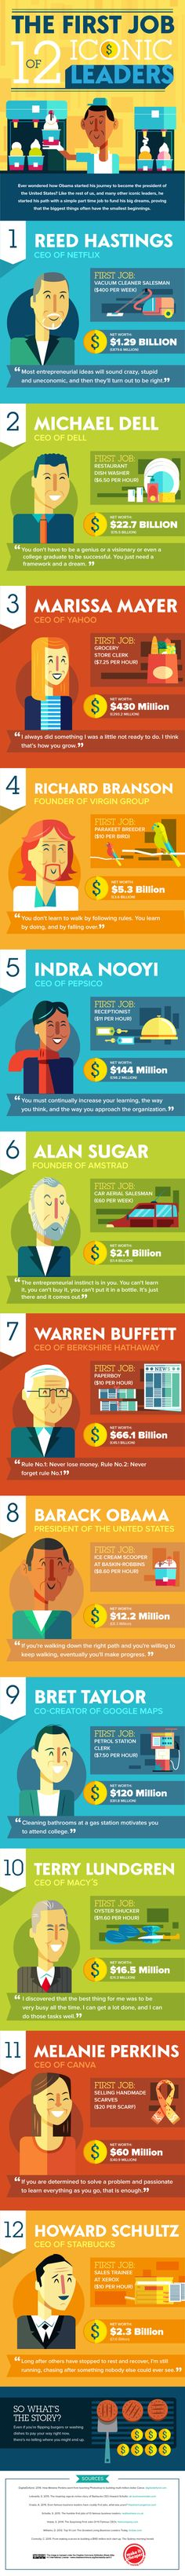 Your first job is important not only for saving, but also for shaping your character. Click here for an infographic that looks at the first job of 12 iconic leaders...